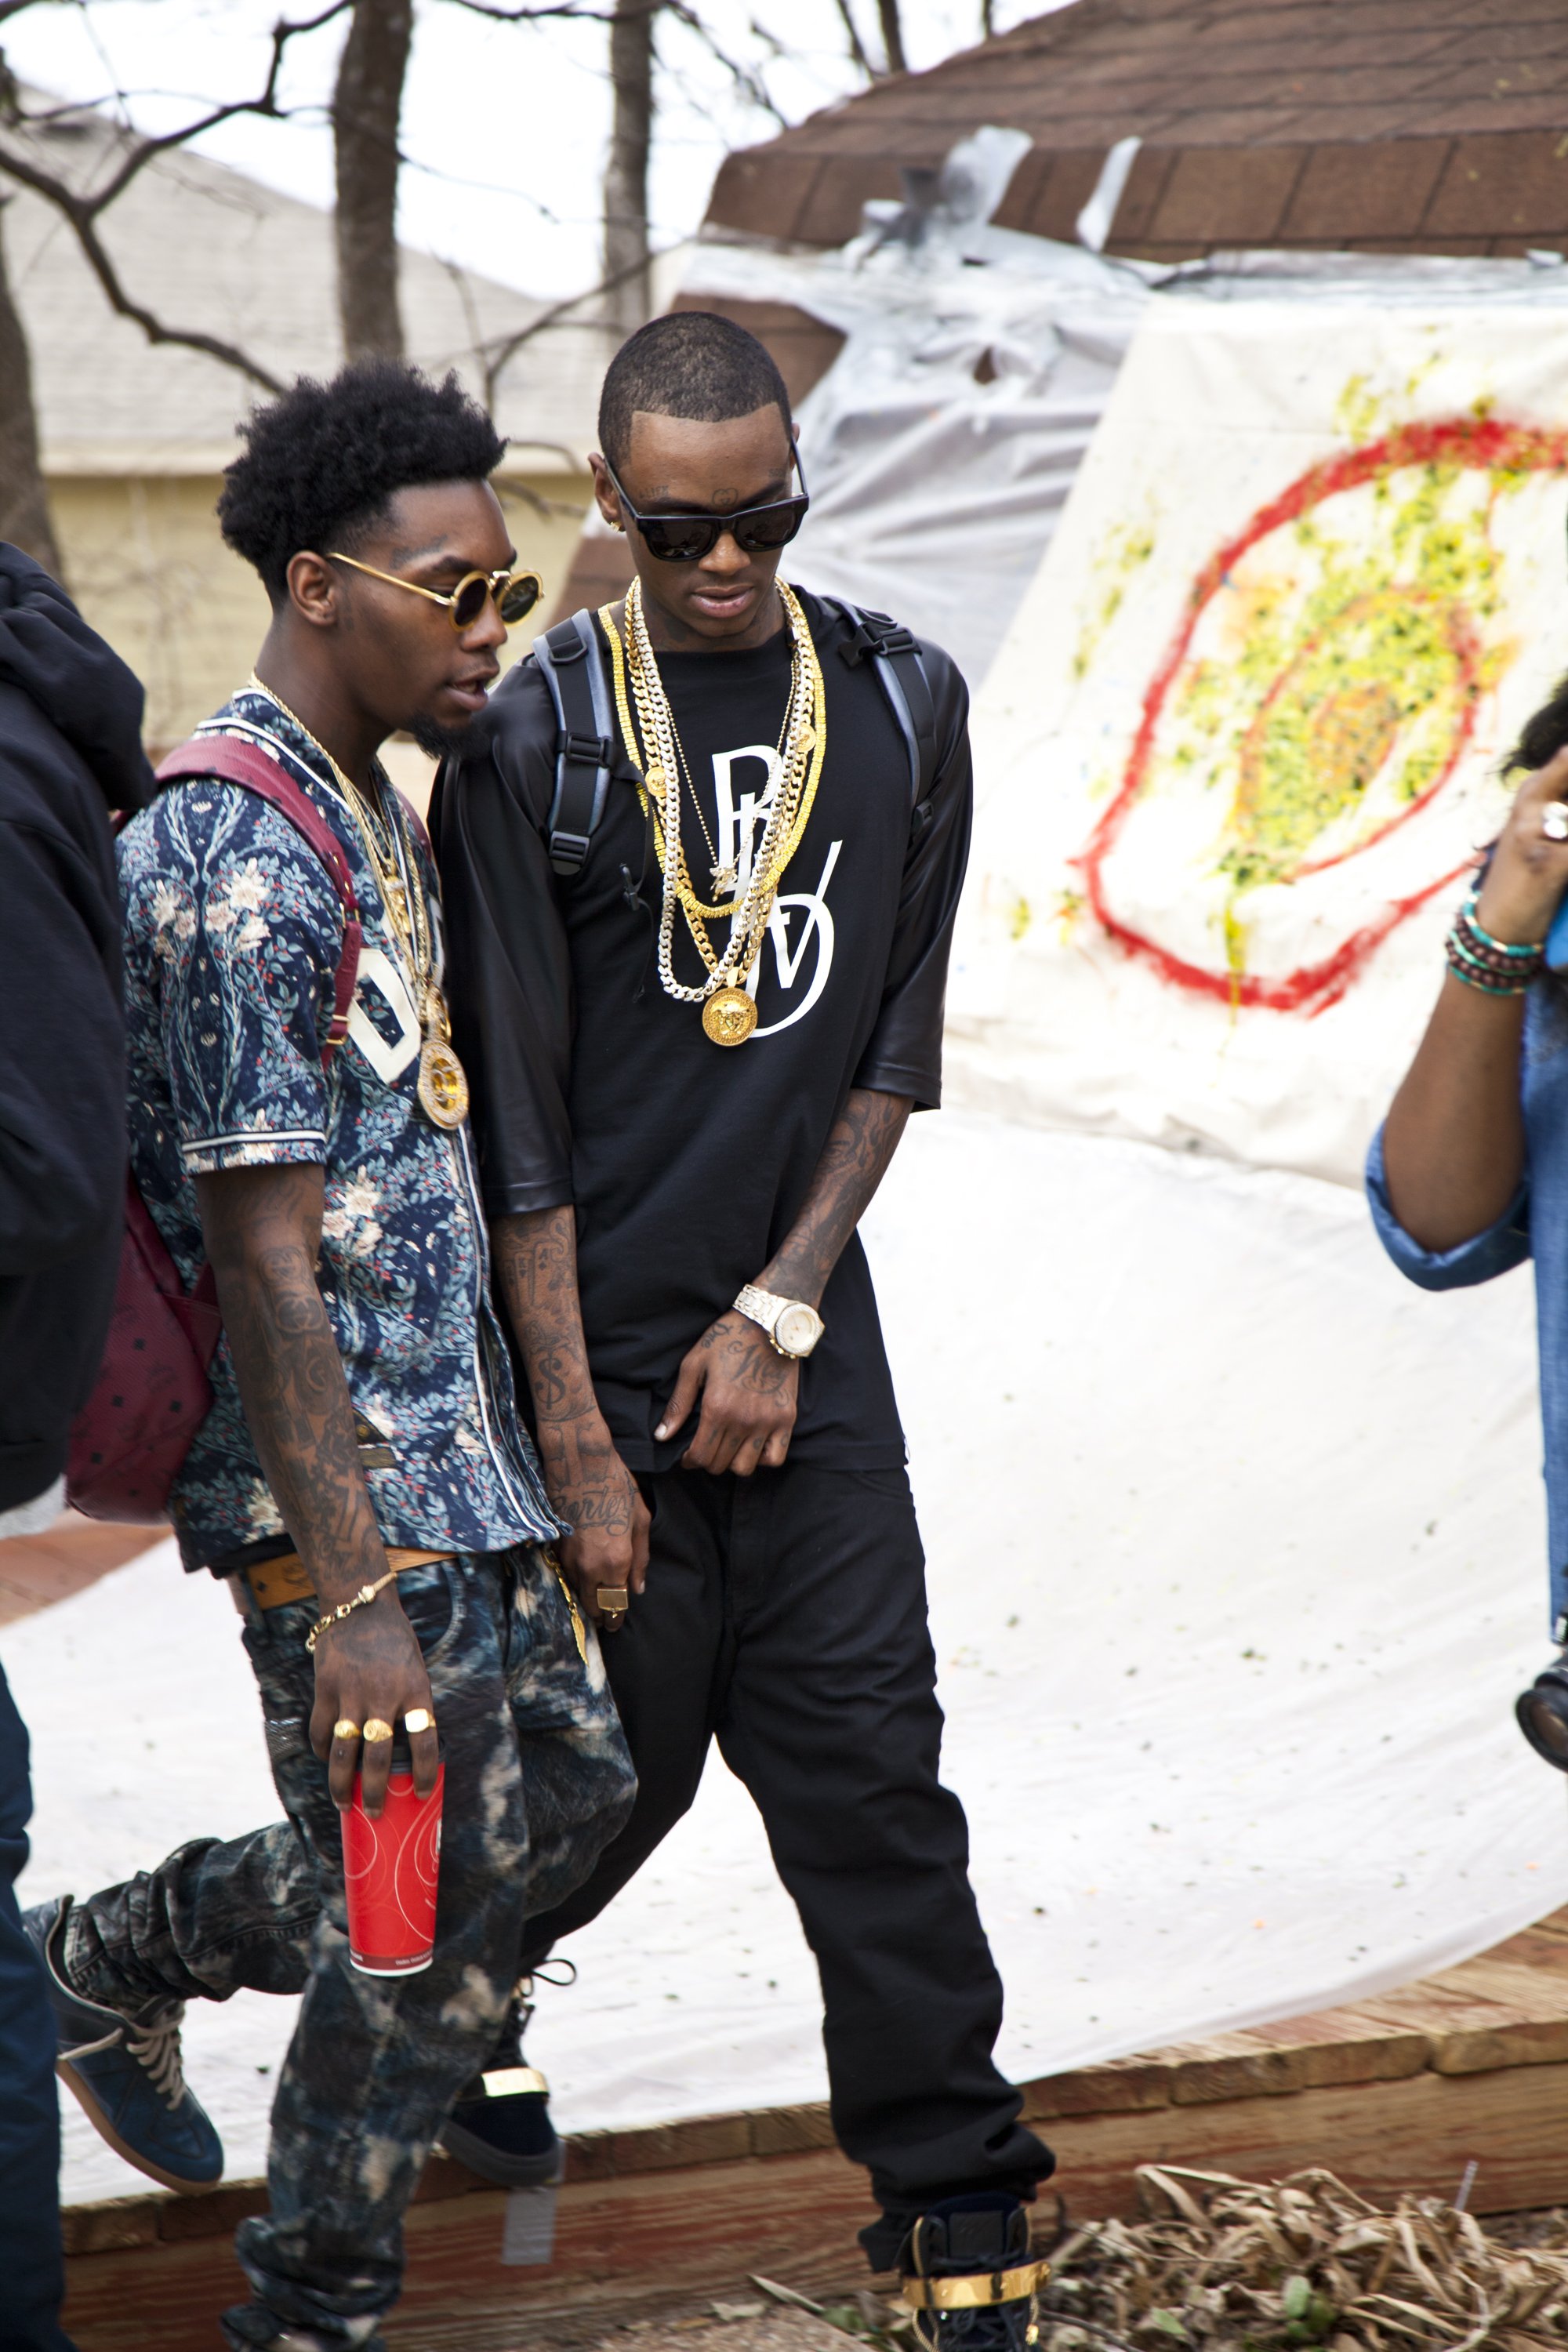 We Went to a Weird Pool Party with Soulja Boy and Migos - VICE